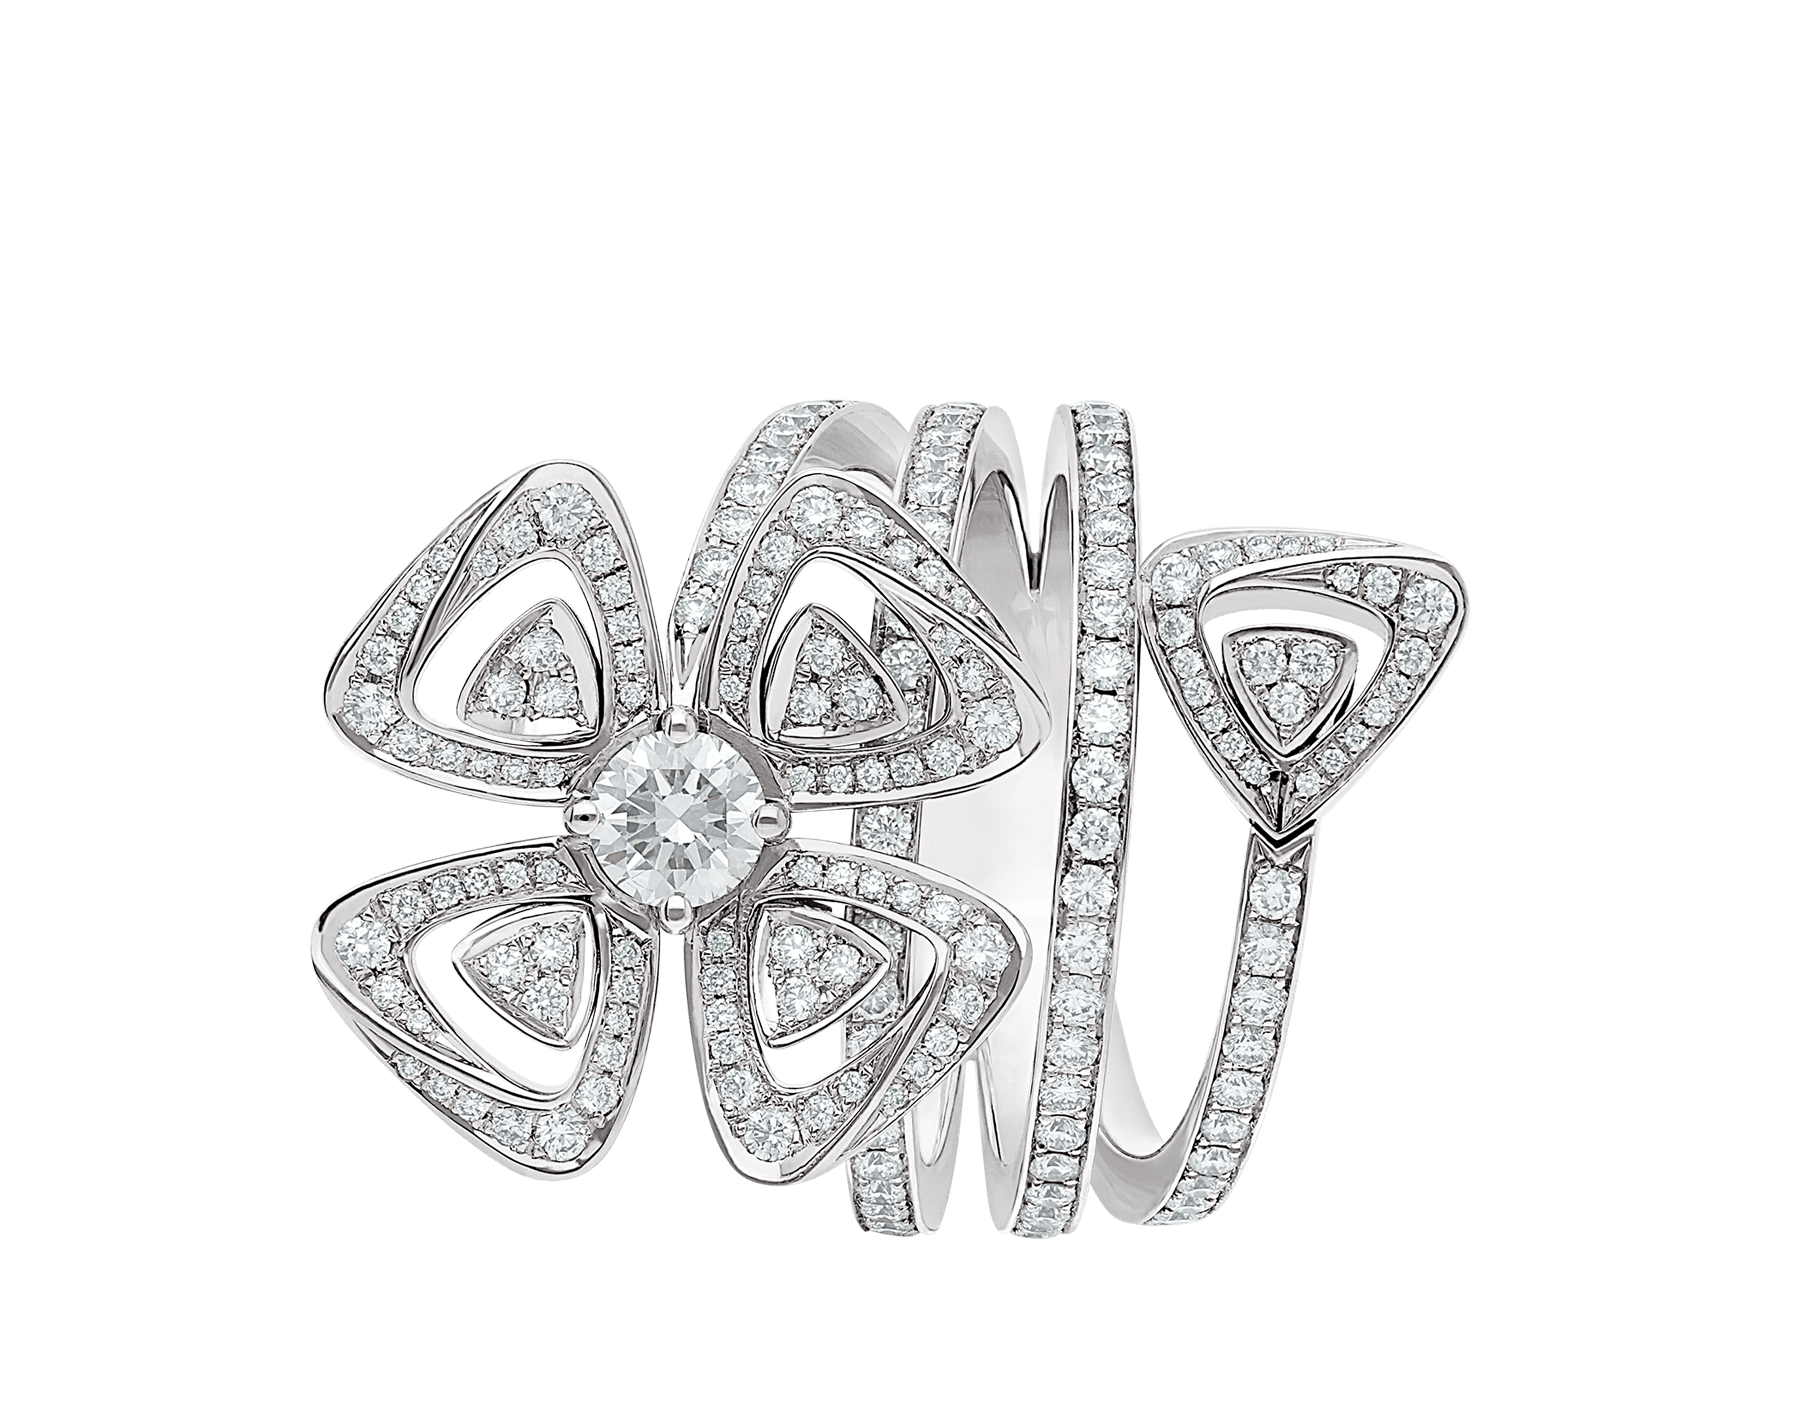 Fiorever 18 kt white gold ring set with a central brilliant-cut diamond (0.30 ct) and pavé diamonds (0.79 ct) AN859148 image 2